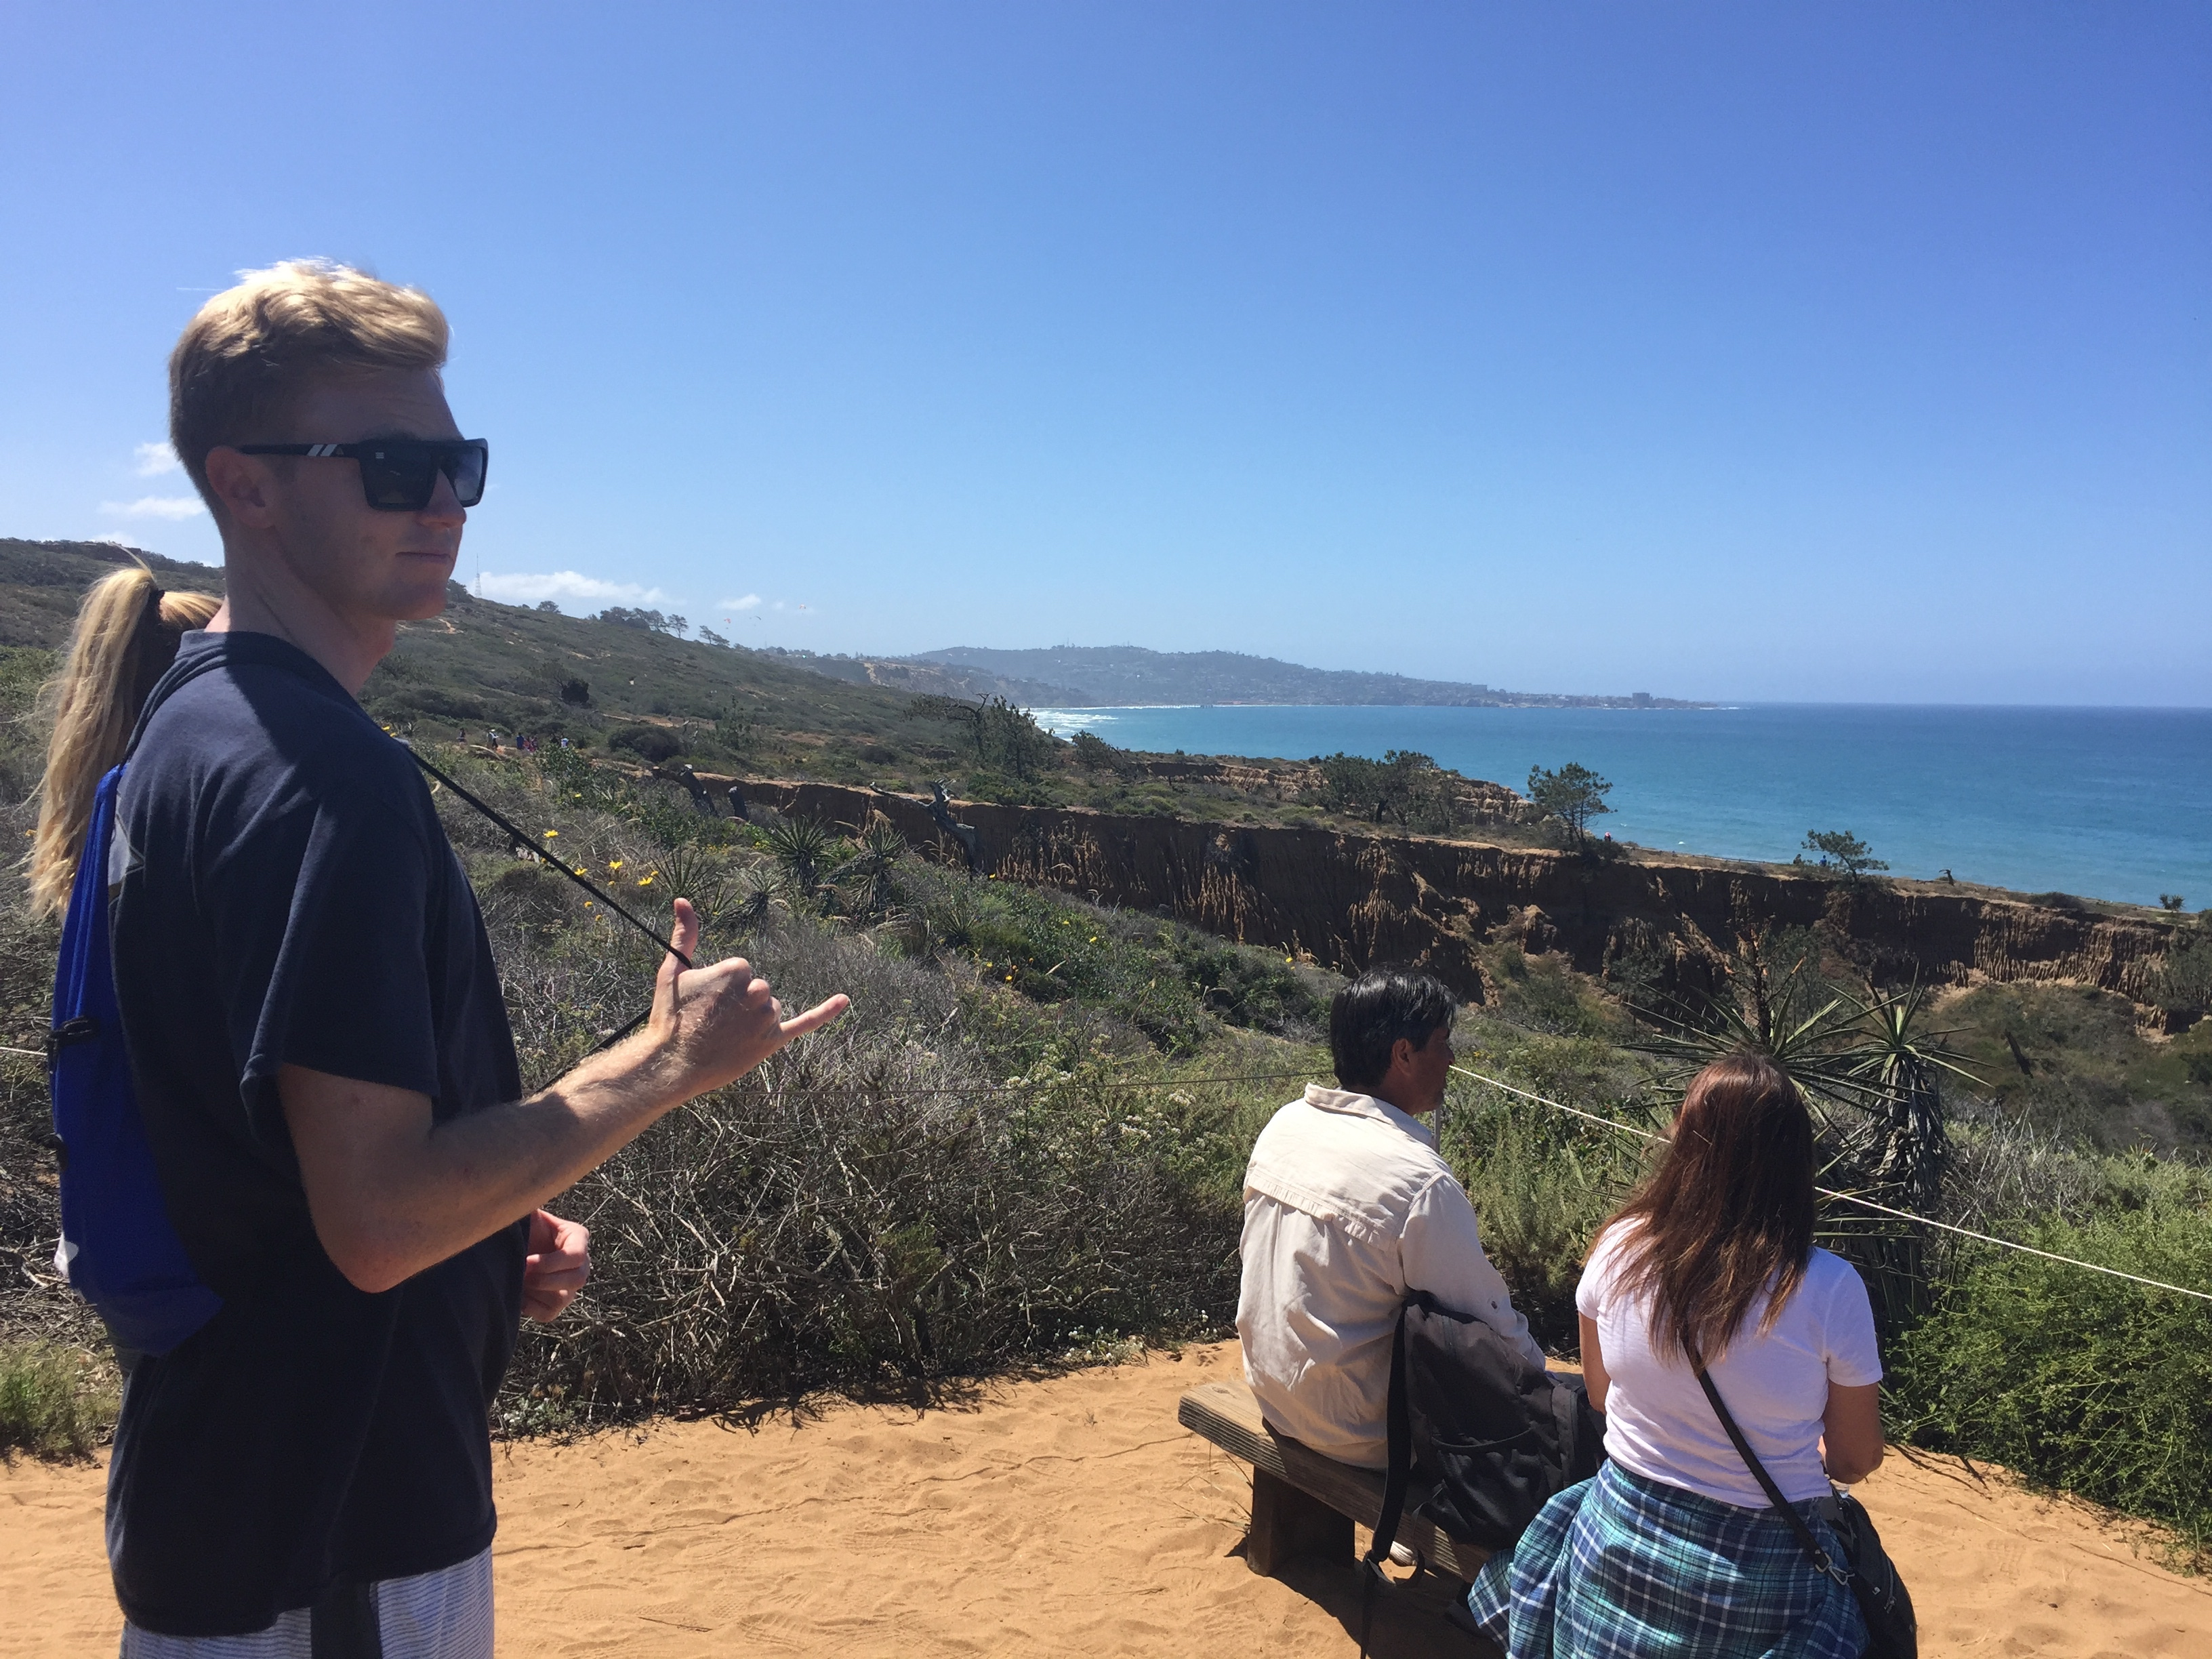 Nate Reed hanging out at Torrey Pines.